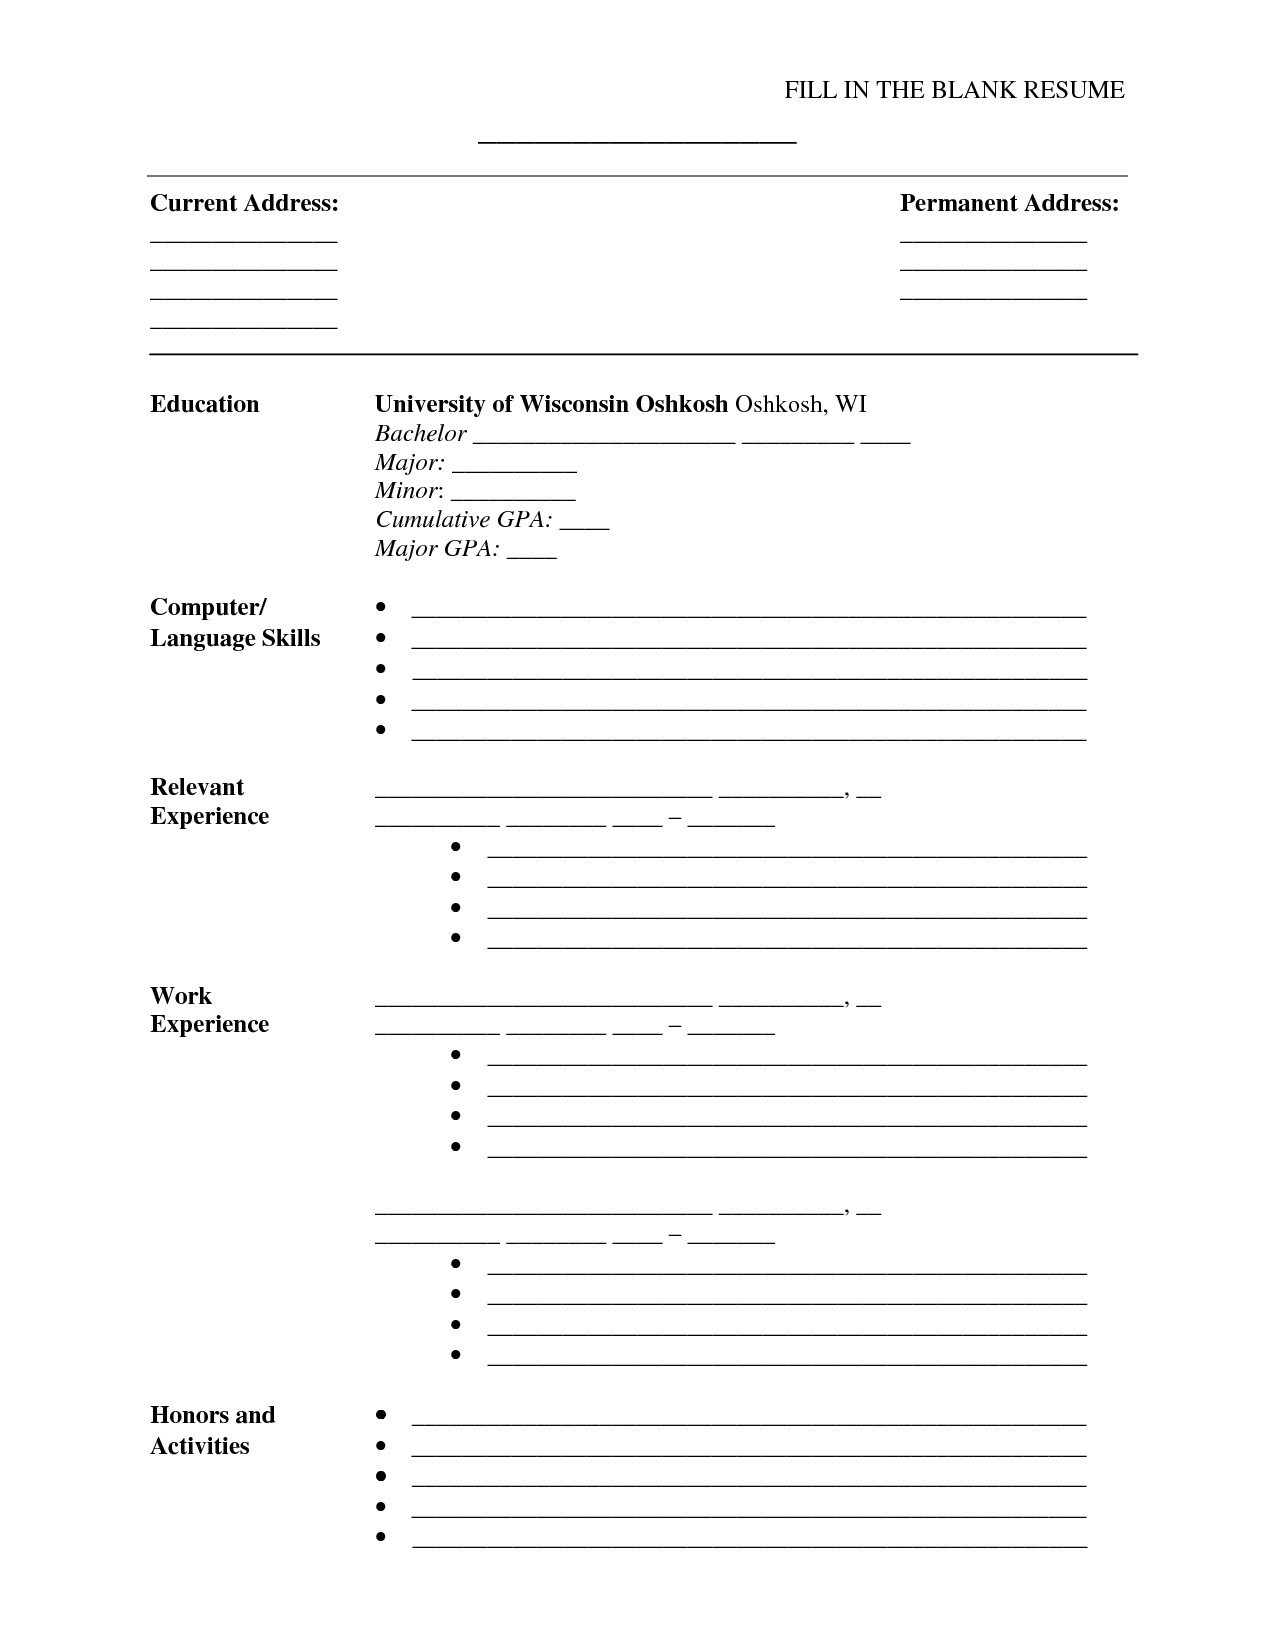 Resume Templates Blank Free Printable New Free Printable Resume - Free Printable Fill In The Blank Resume Templates